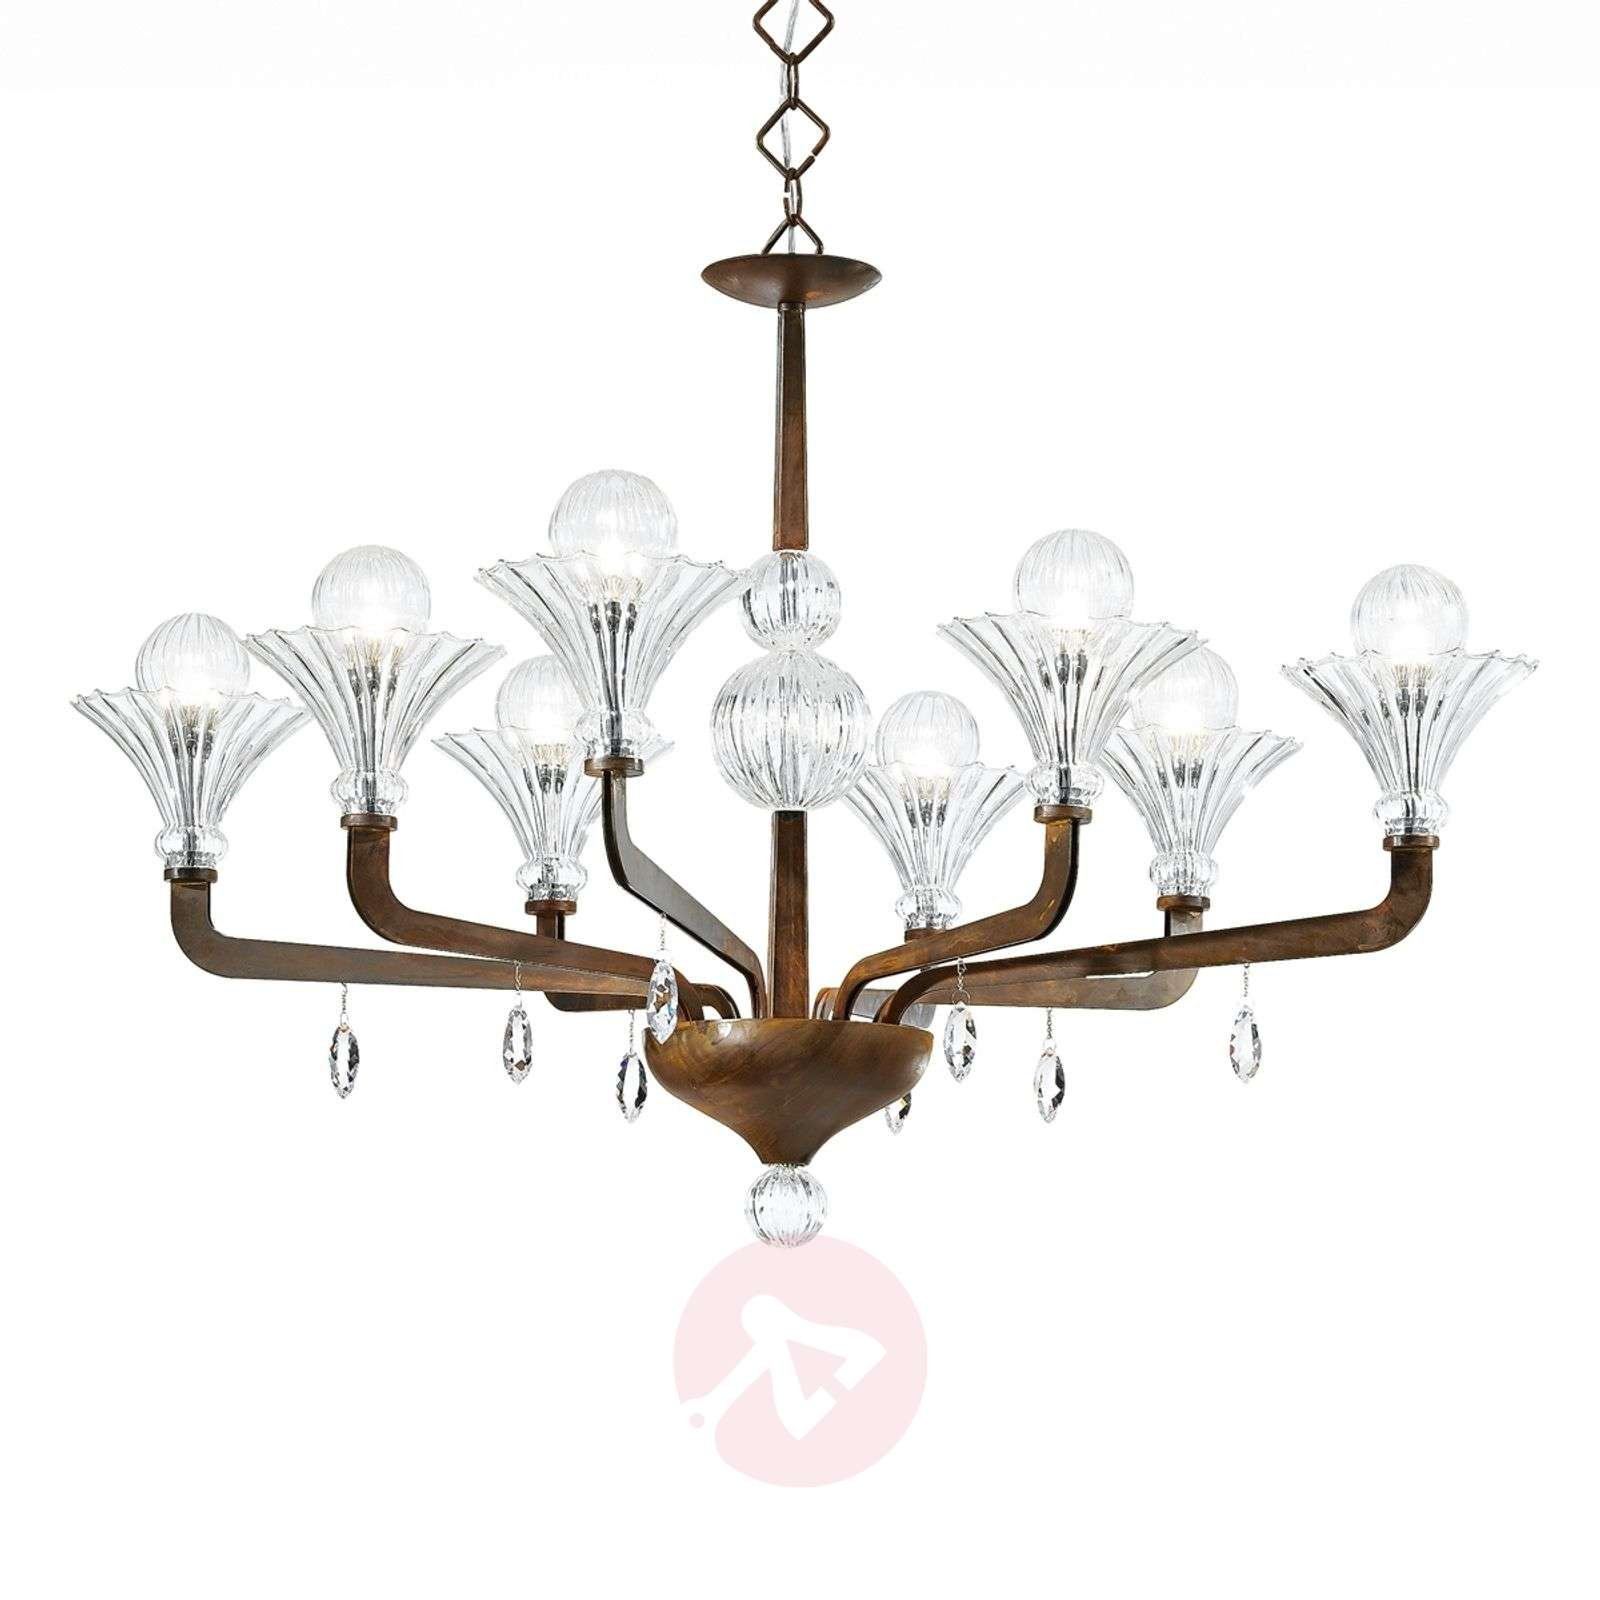 Luminaire 8 lampes